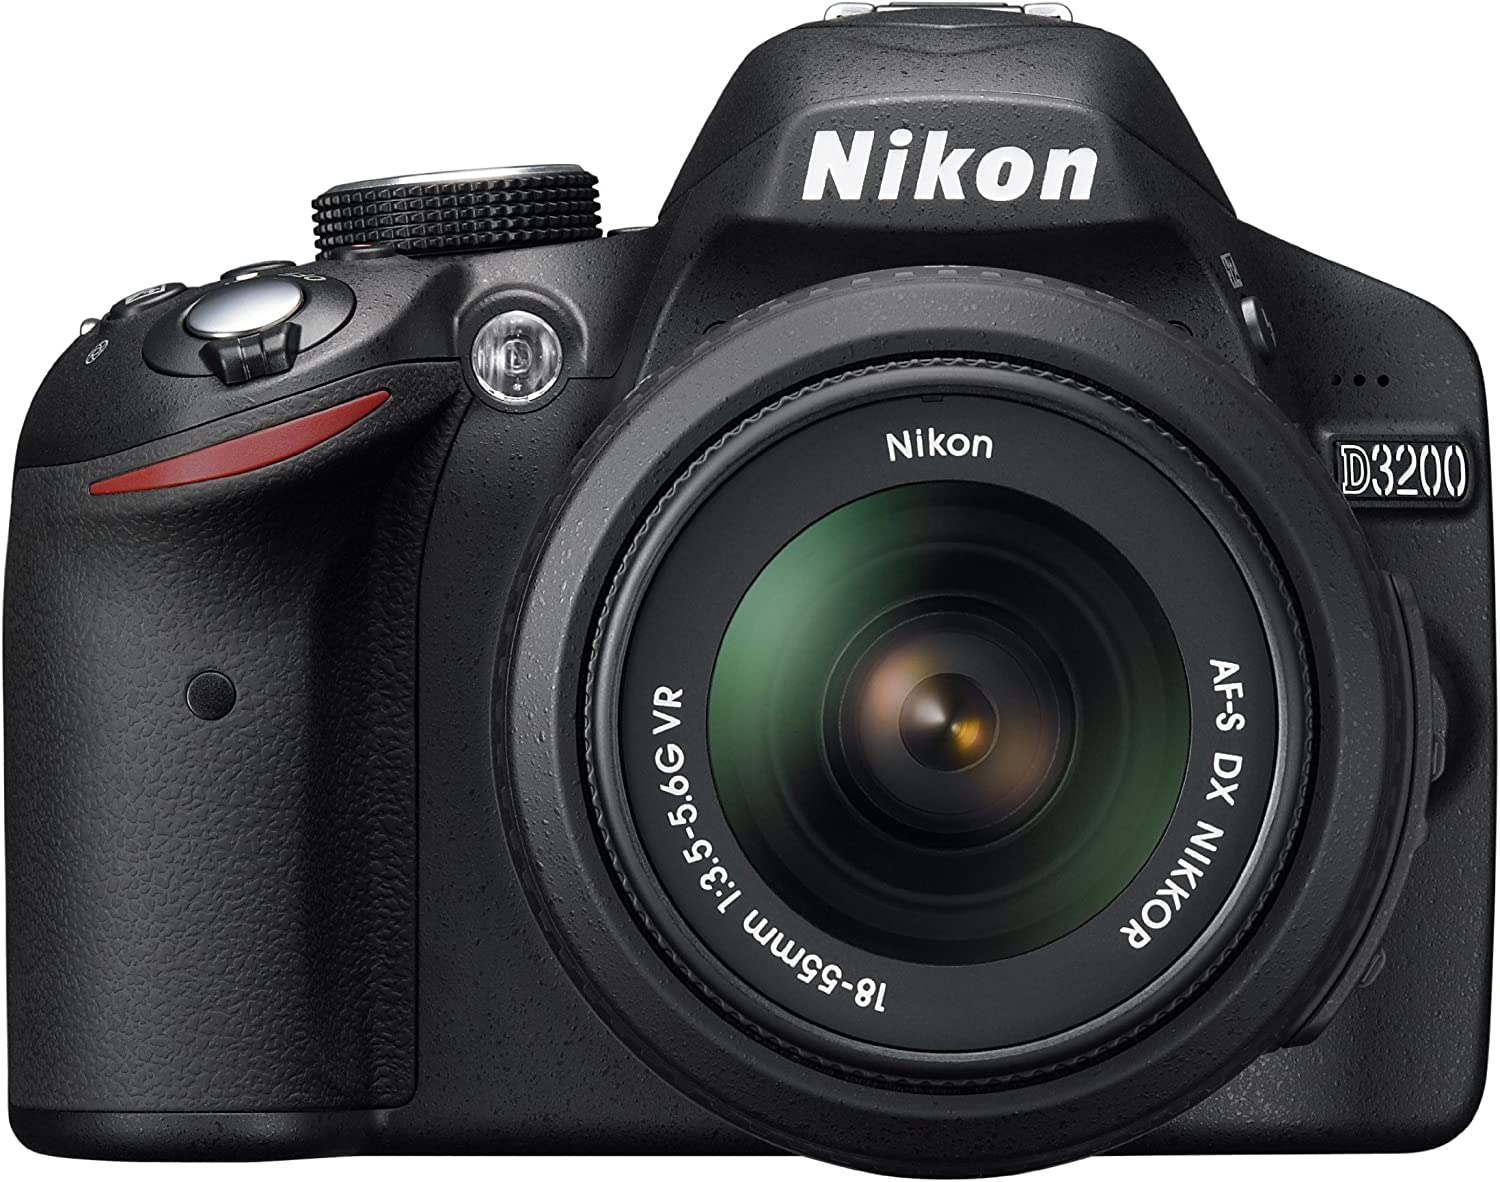 Amazon Com Nikon D3200 24 2 Mp Cmos Digital Slr With 18 55mm F 3 5 5 6 Auto Focus S Dx Vr Nikkor Zoom Lens Black Old Model Slr Digital Cameras Camera Photo